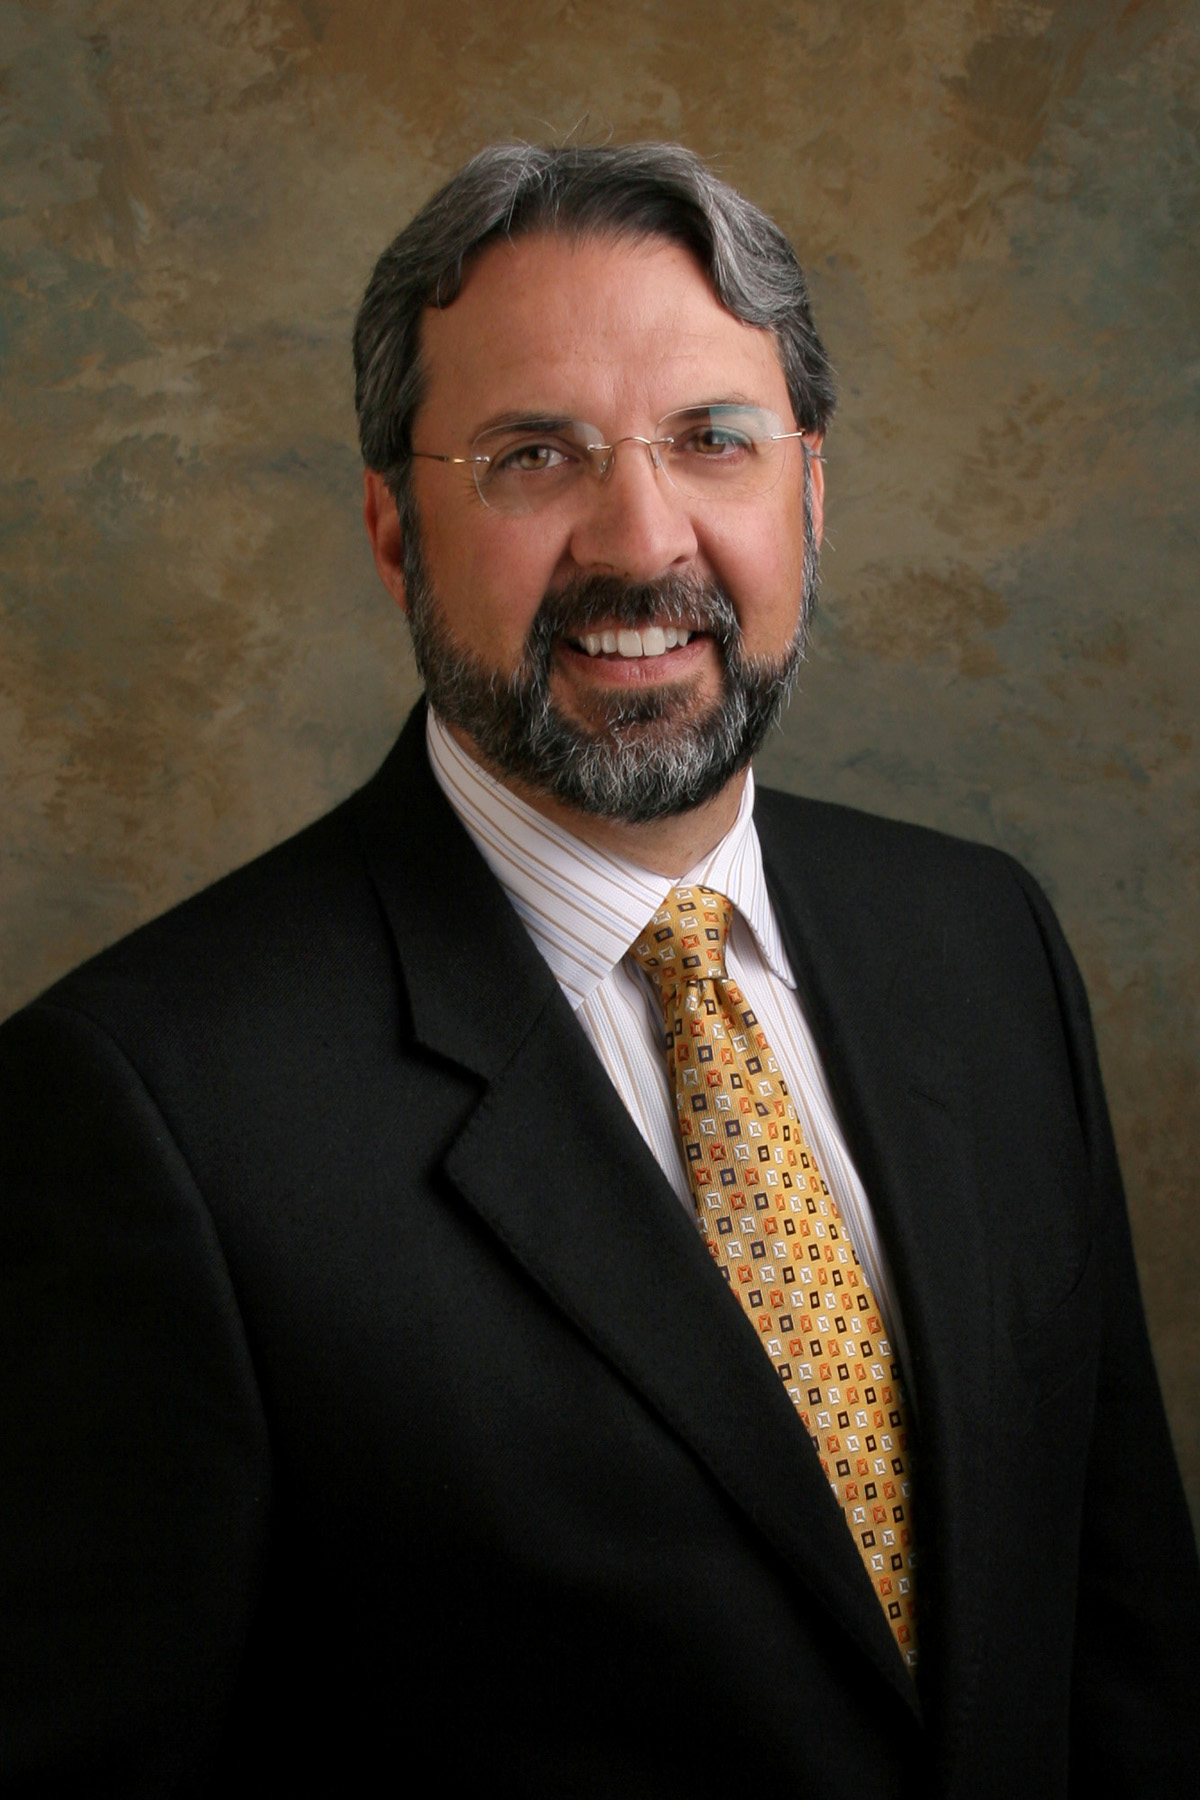 David J Moyer, DDS, MD